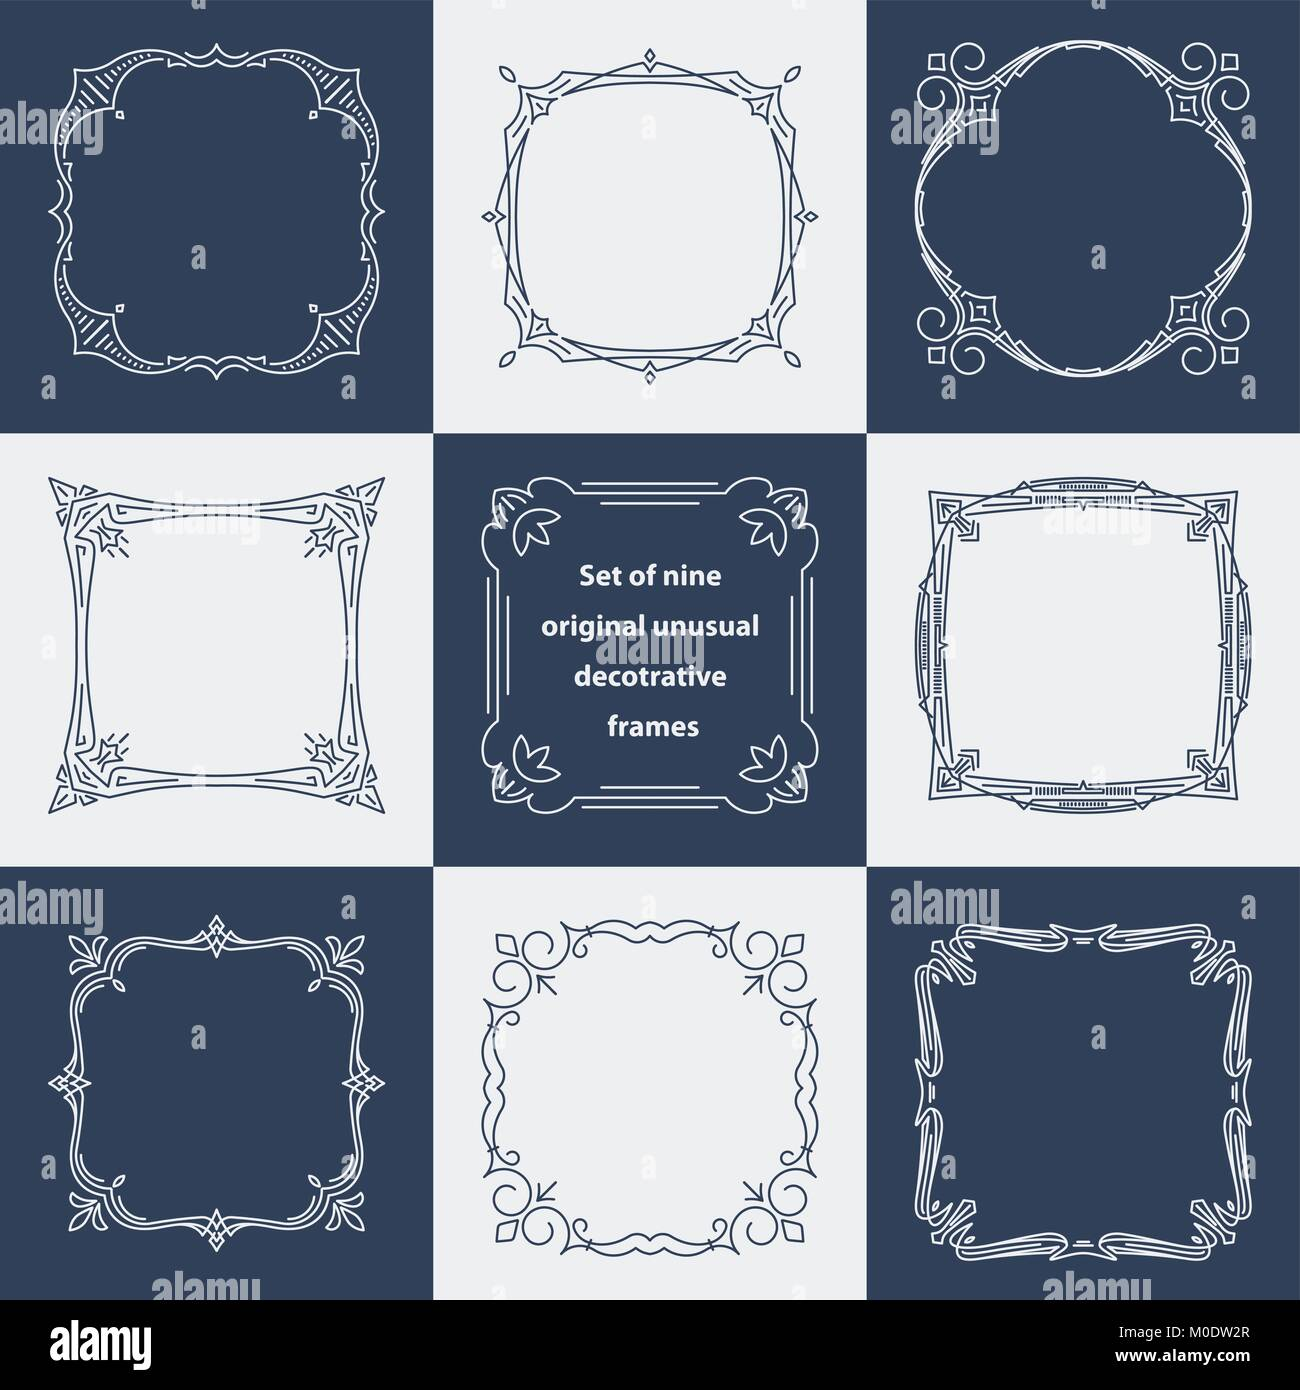 dcd7c842d73e Set of 9 unusual decorative vintage frames in mono line style. Abstract  vector illustration for